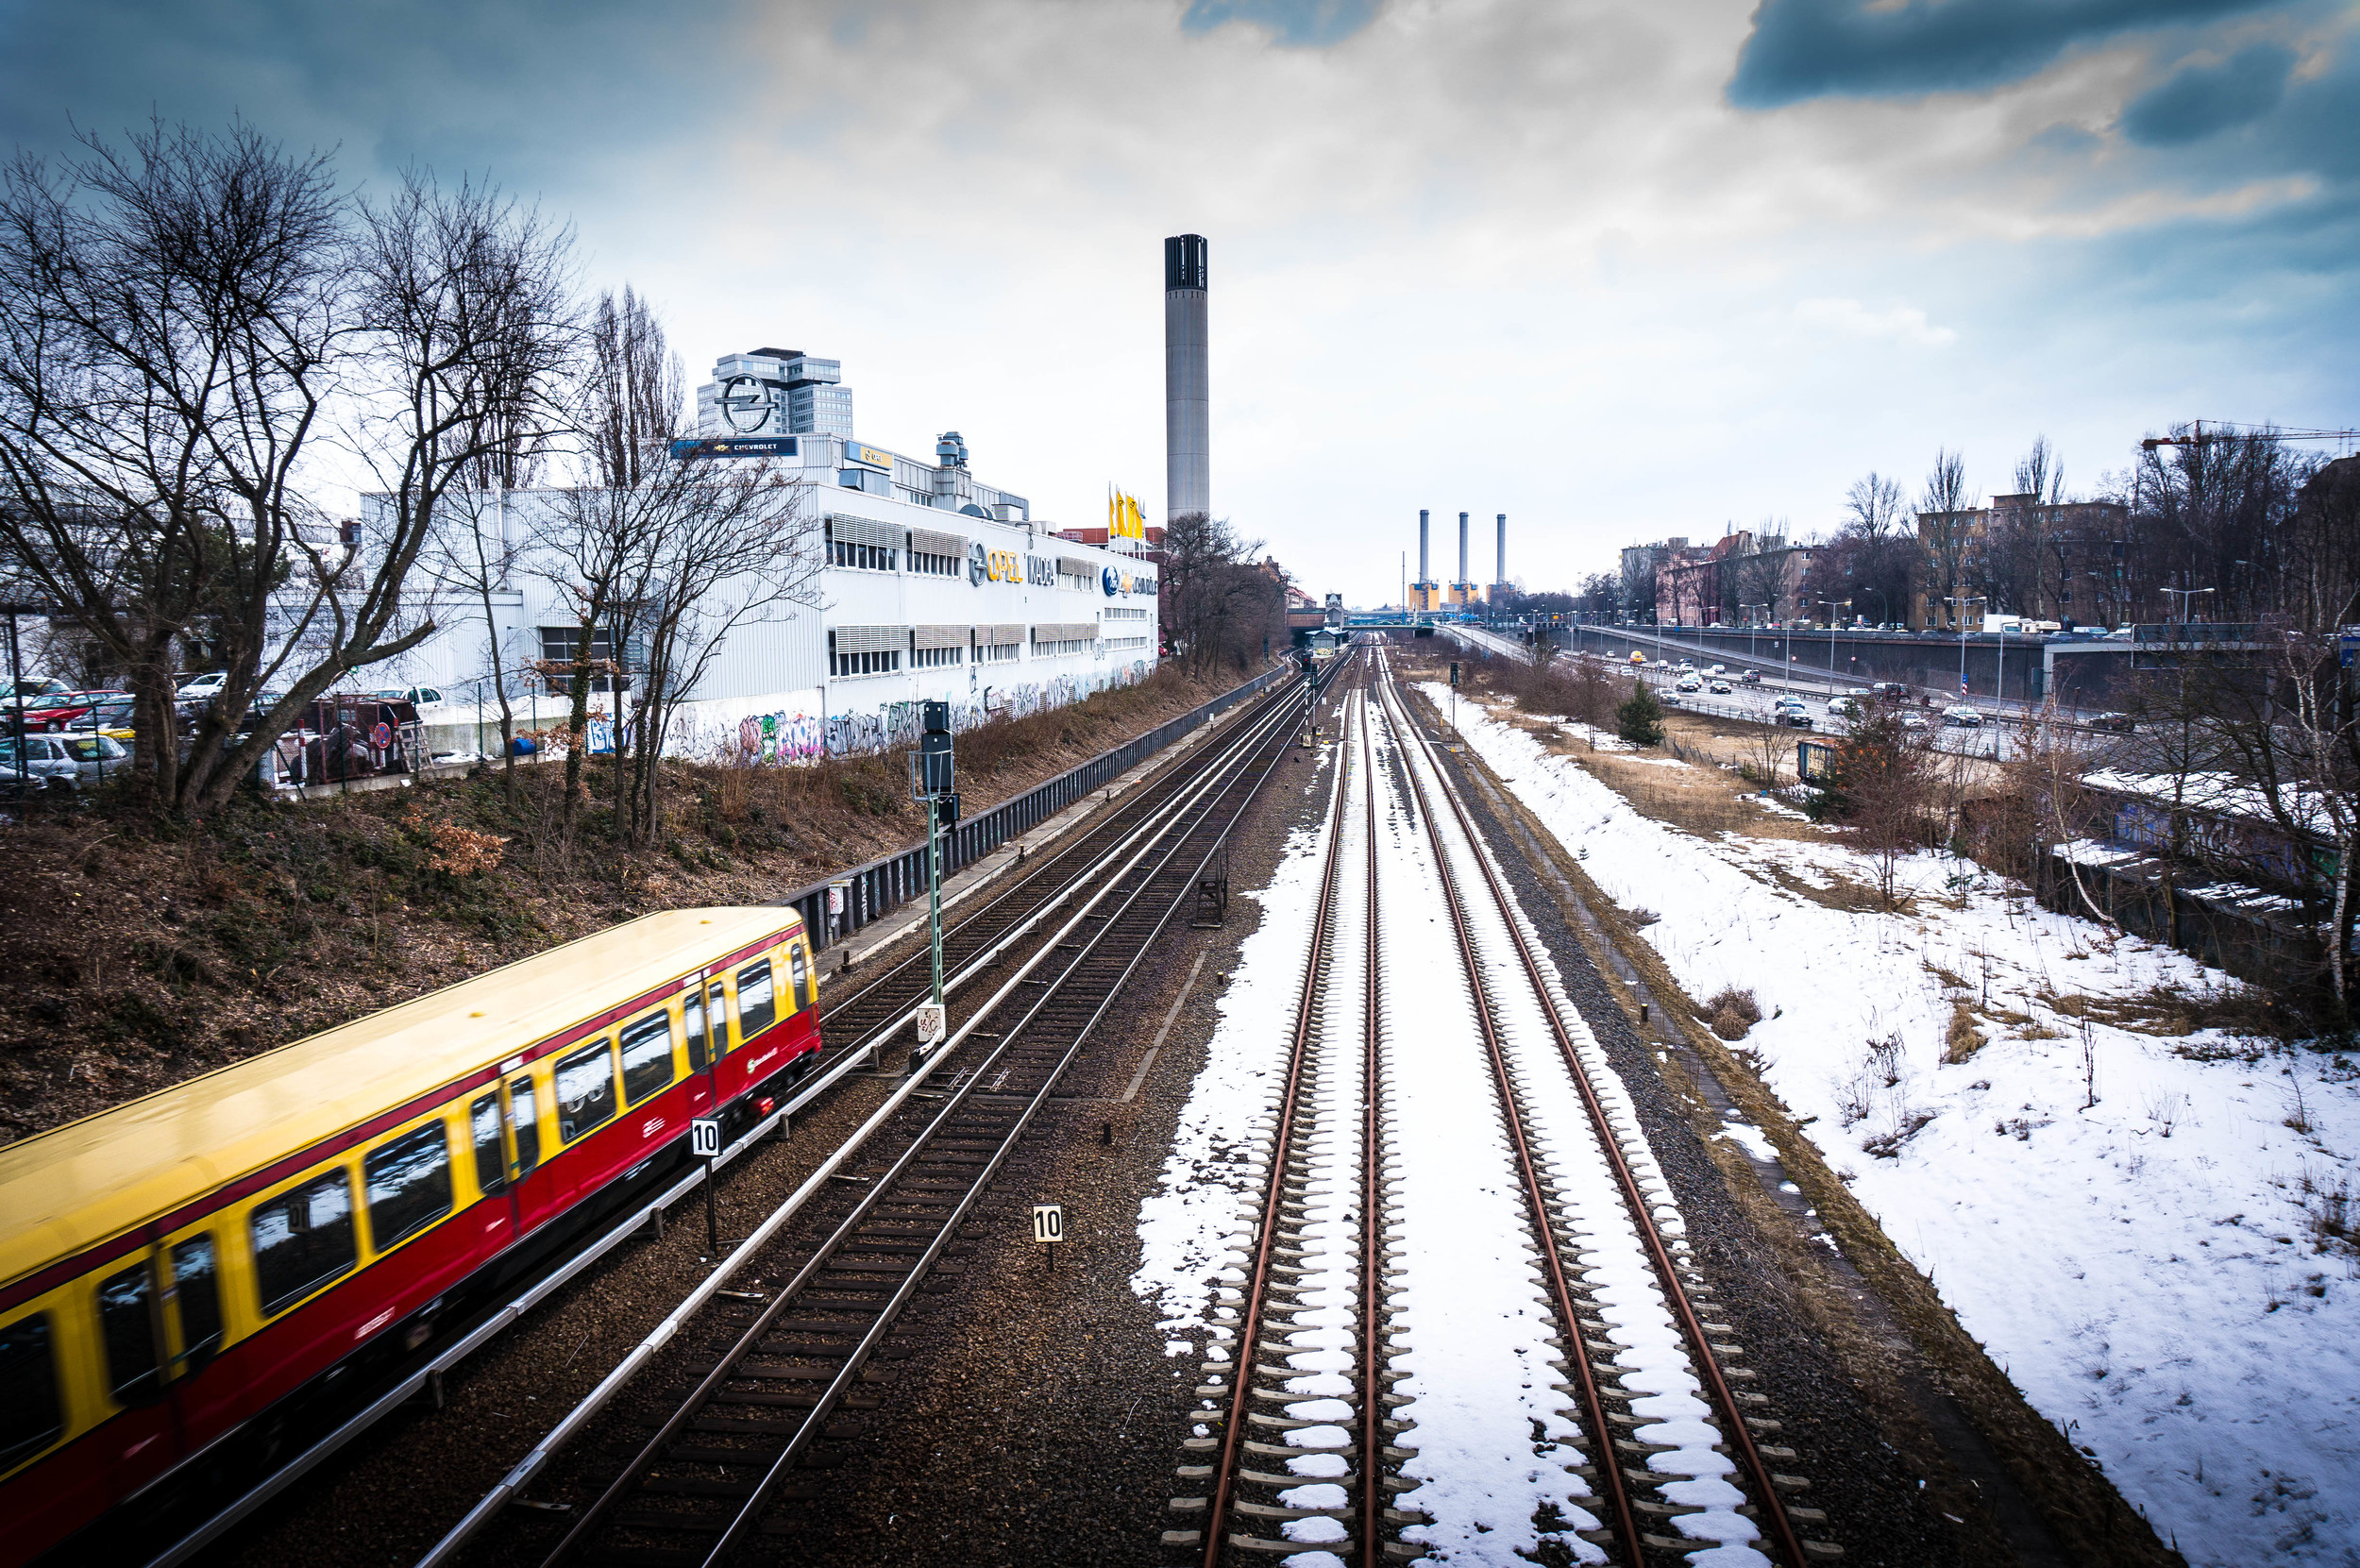 S-Bahn on Snowy Tracks